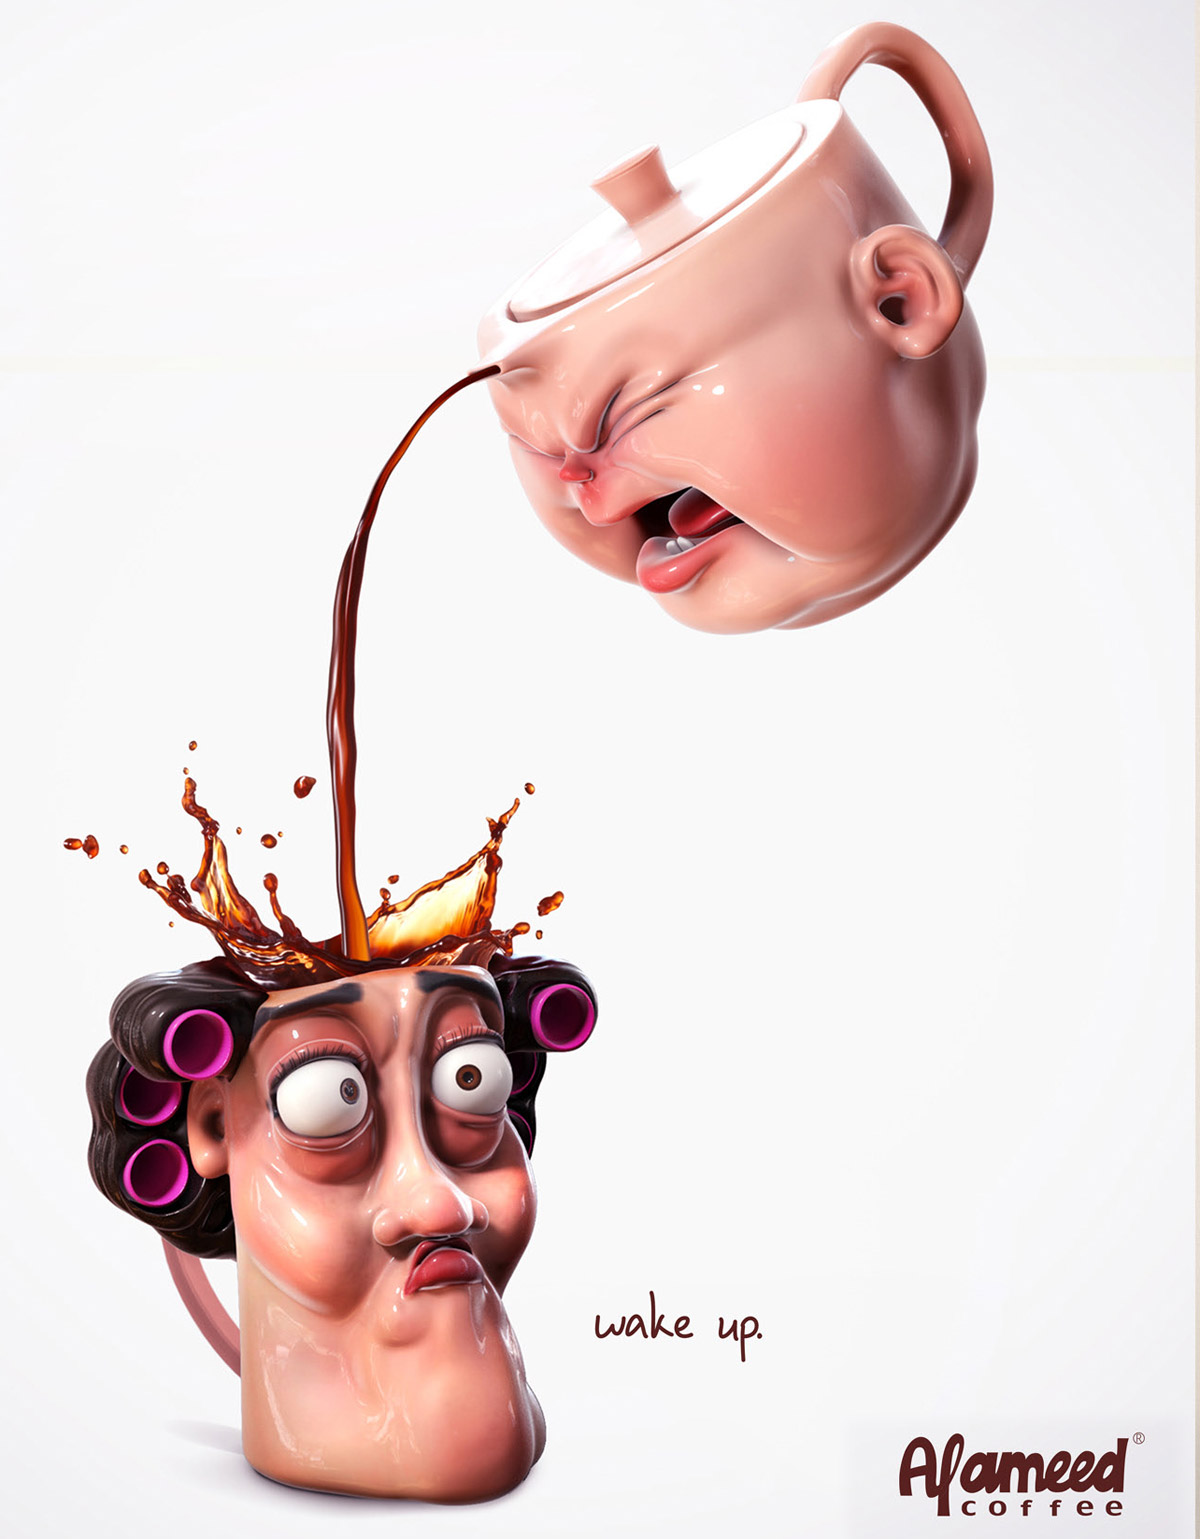 funny ad 3d model alameed coffee by zayd abidi